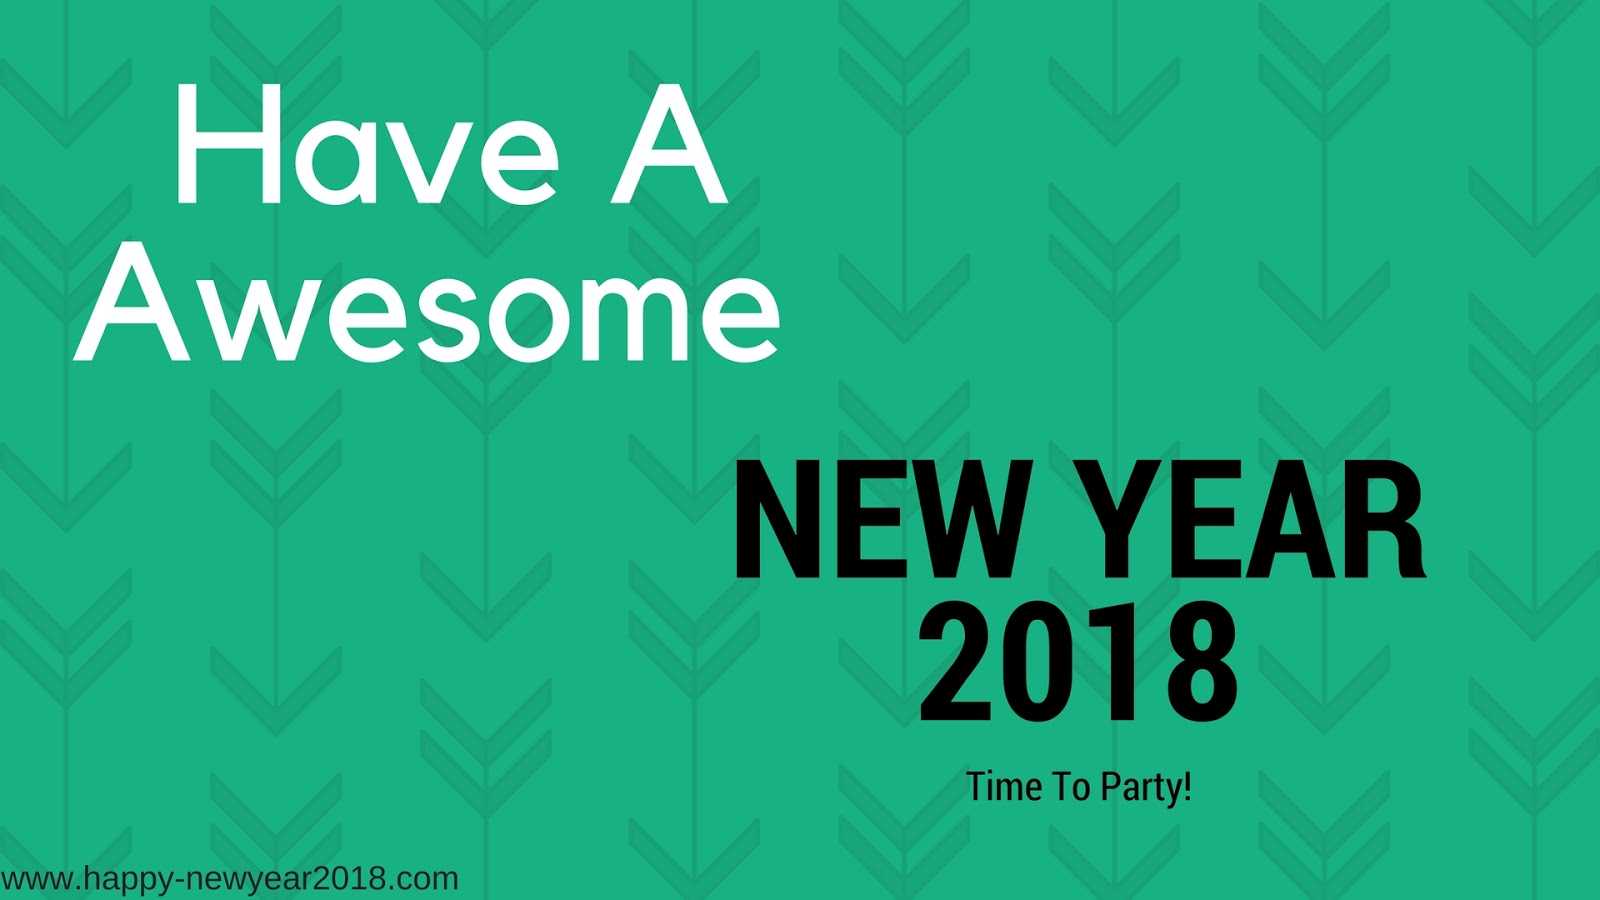 Happy New Year 2018 hd images quotes